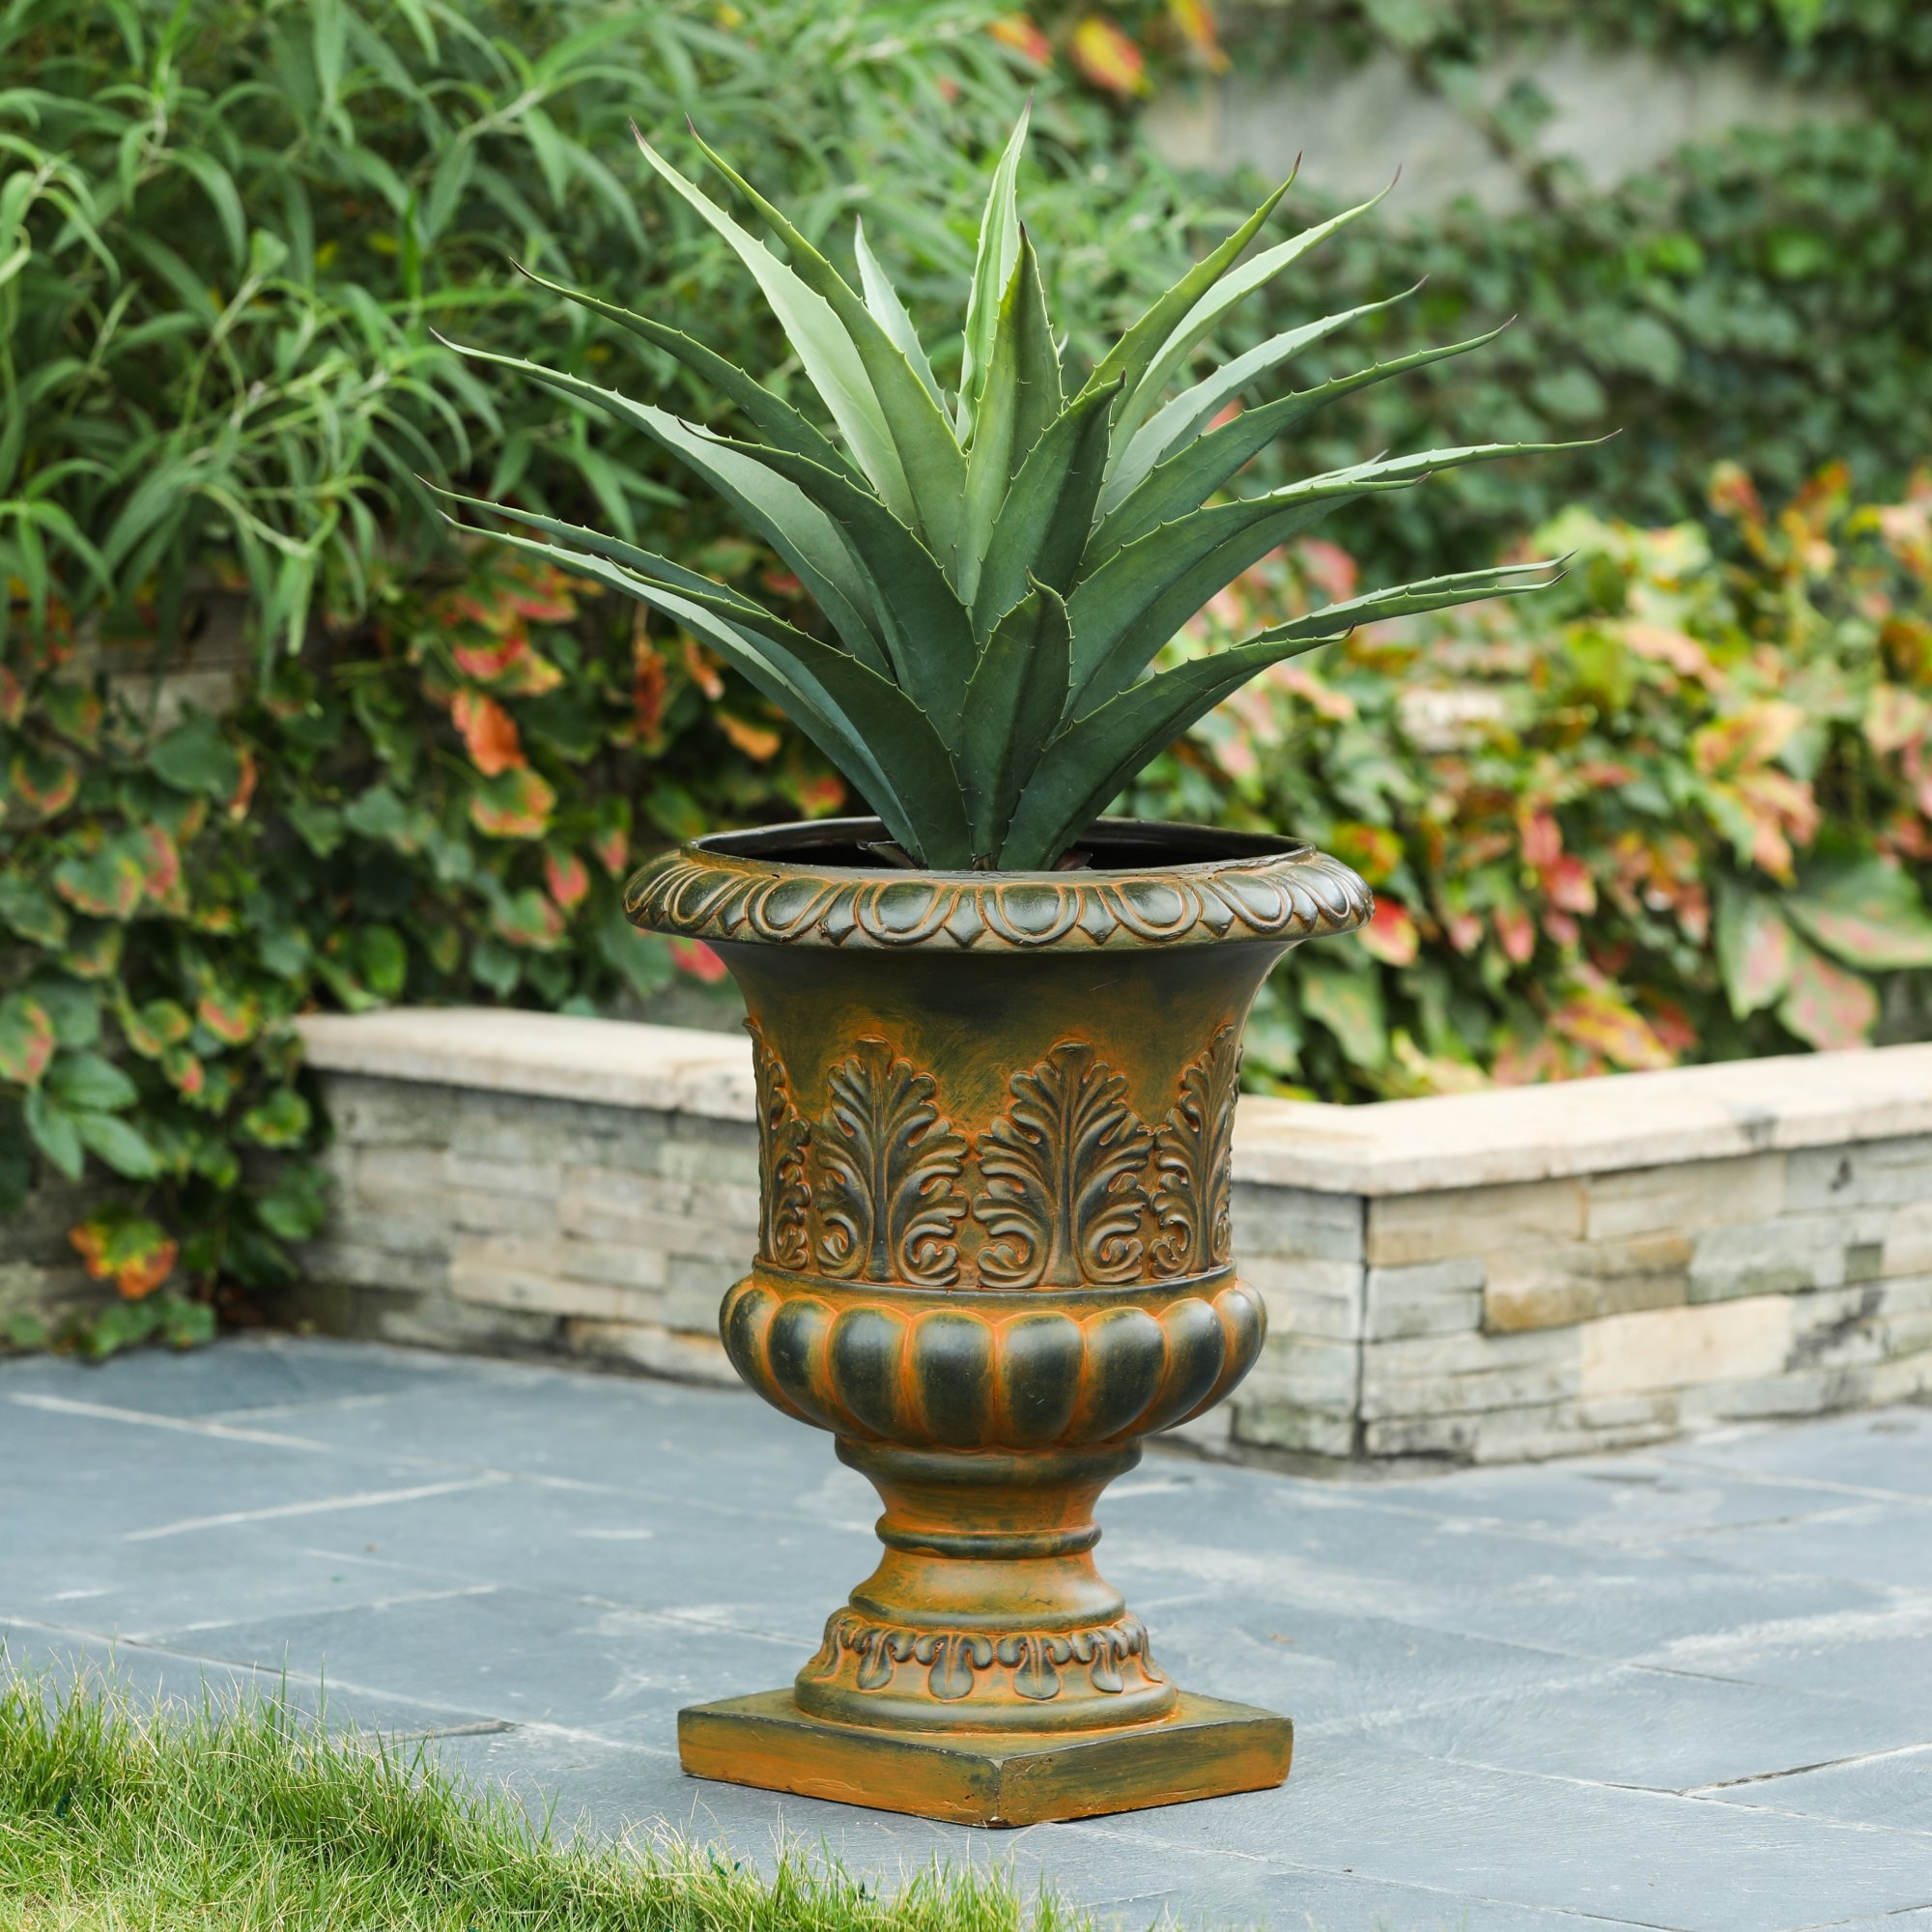 Luxen Home Weathered Decorative MgO Urn Planter